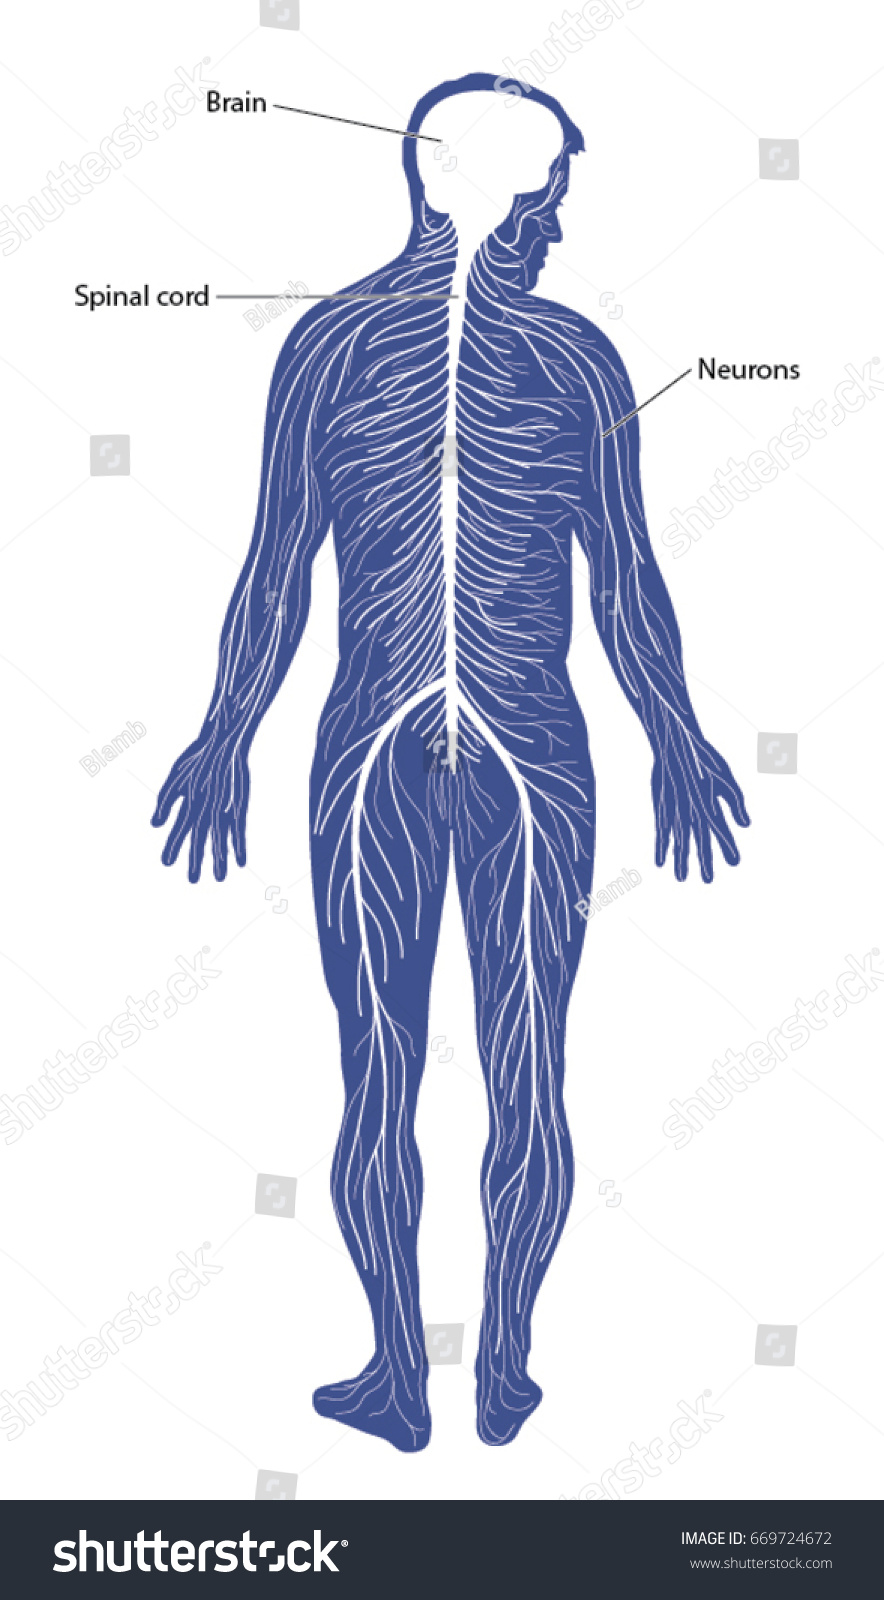 hight resolution of schematic diagram of the nervous system comprising of the brain spinal cord and peripheral